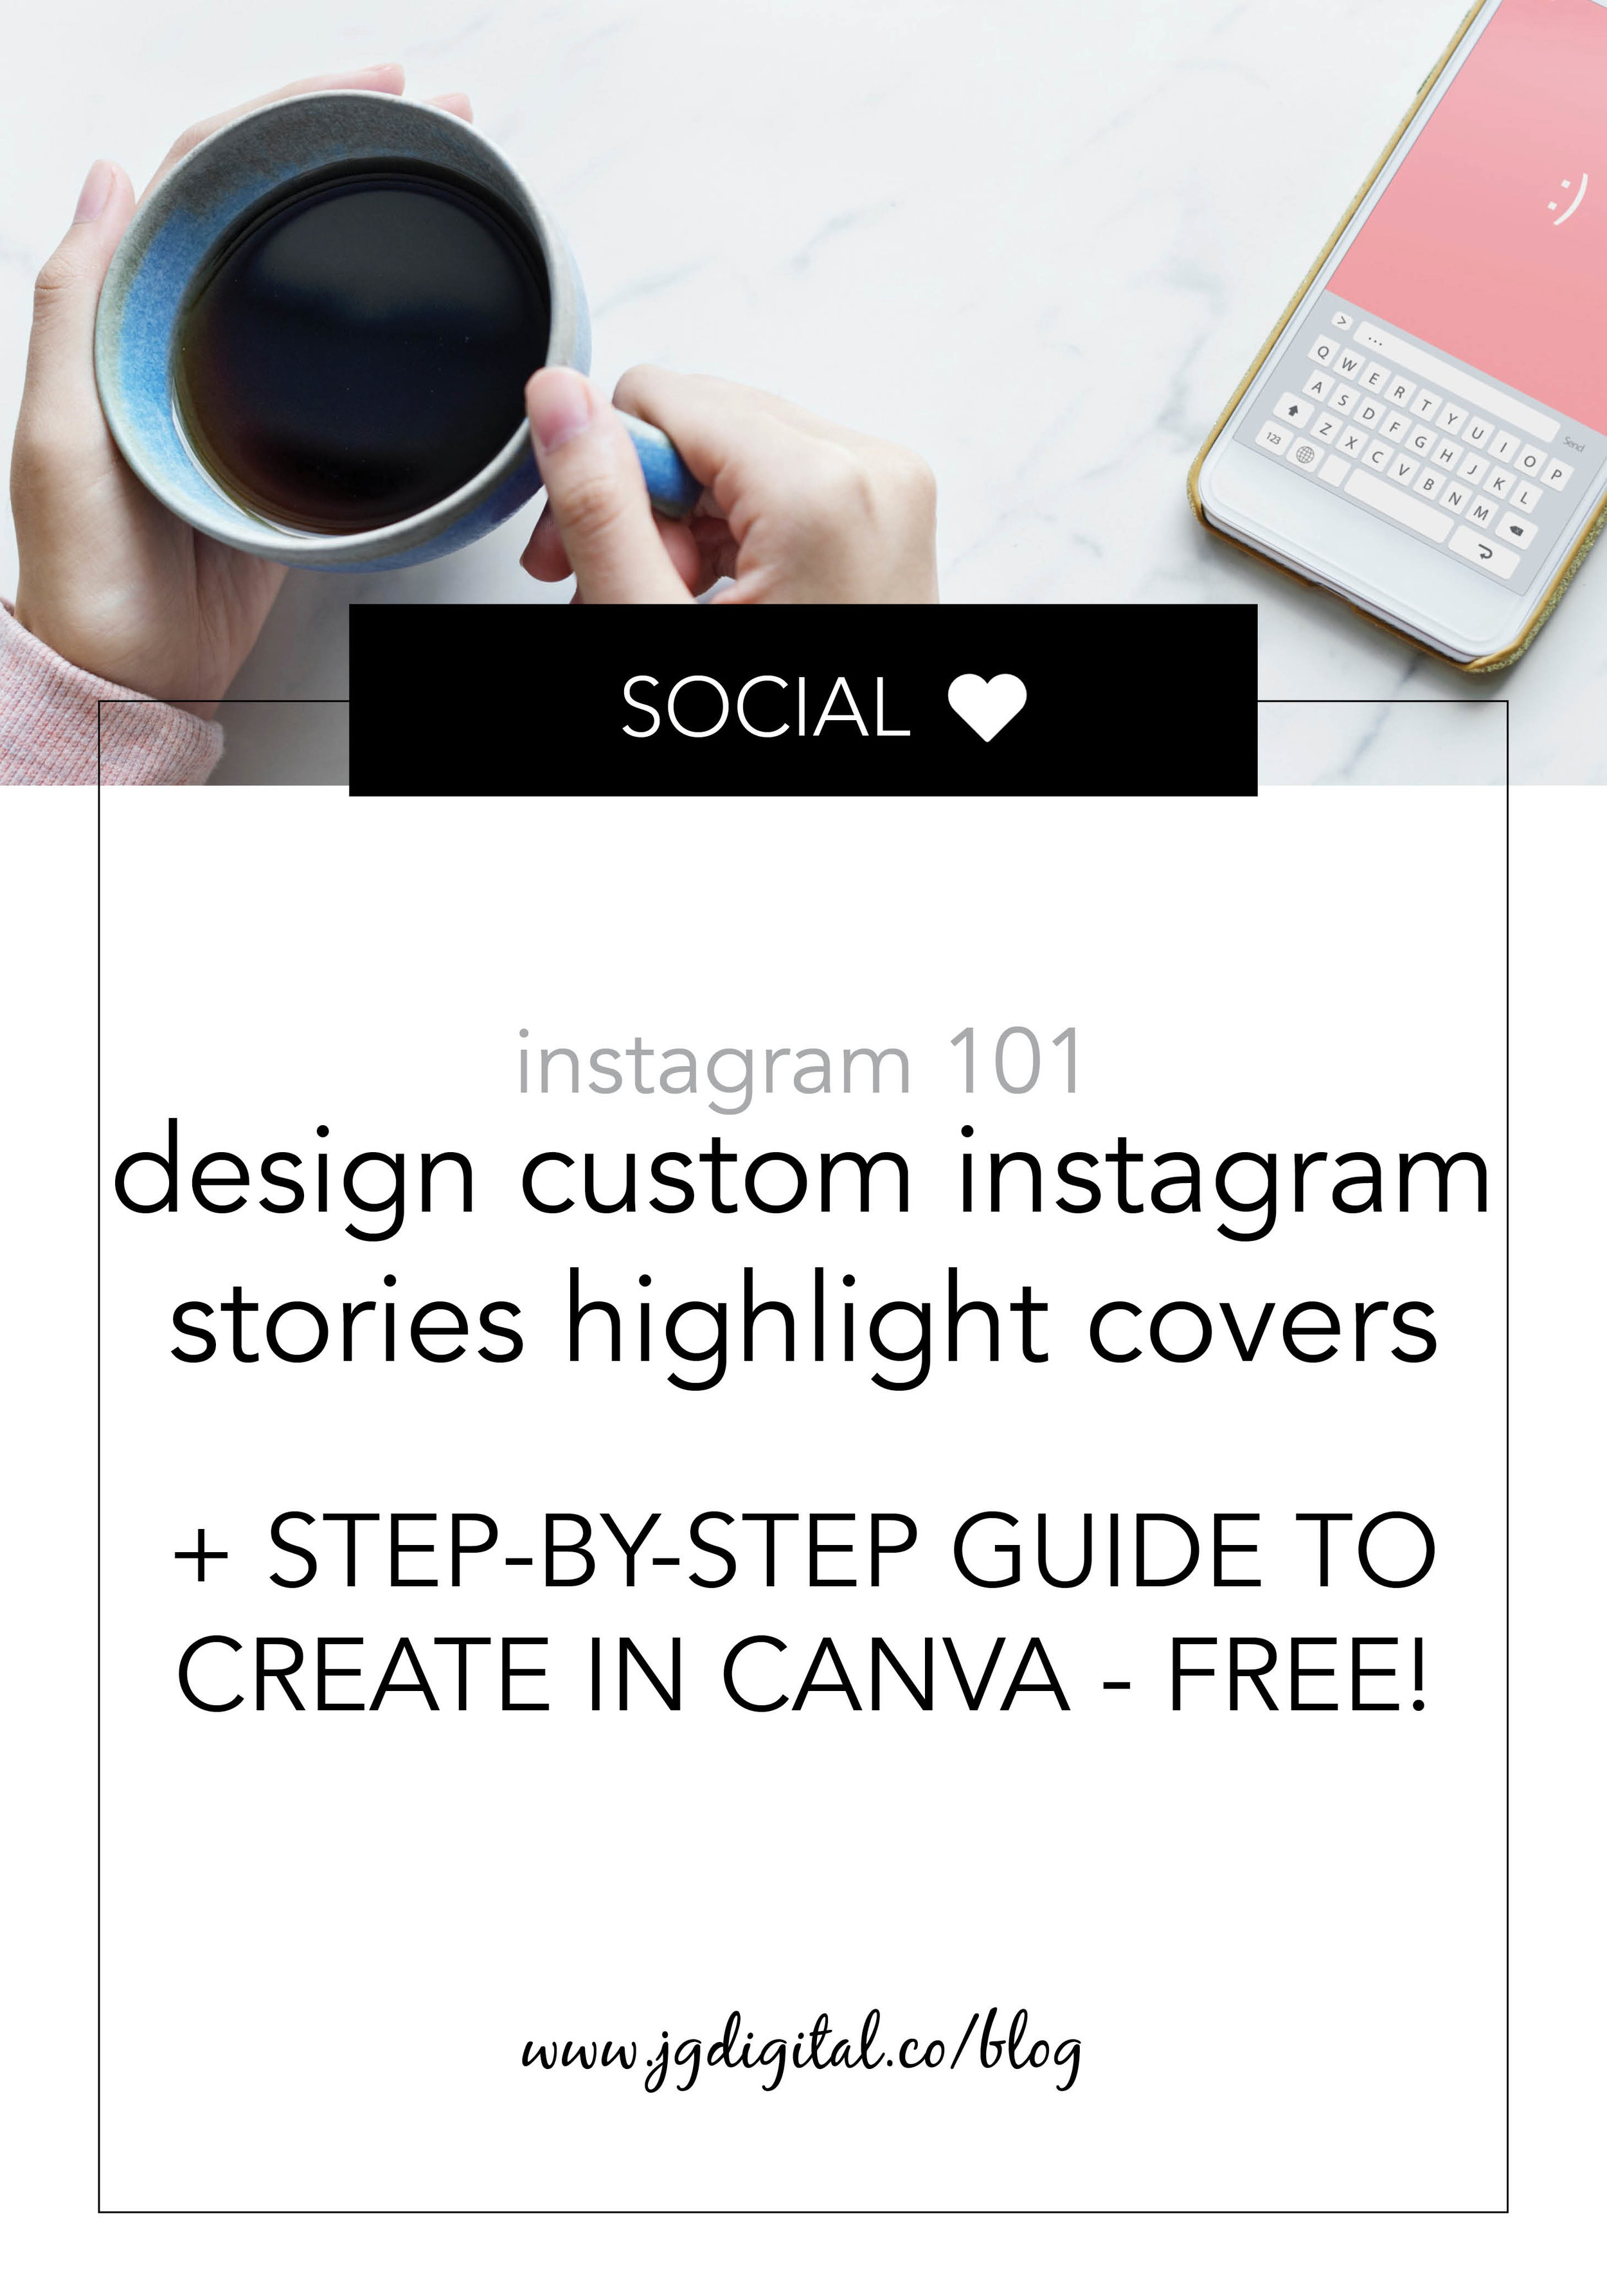 Up Your Instagram Game with Custom Instagram Stories Highlight Covers plus a step-by-step guide to creating a template in Canva - for FREE! by jgdigital.co